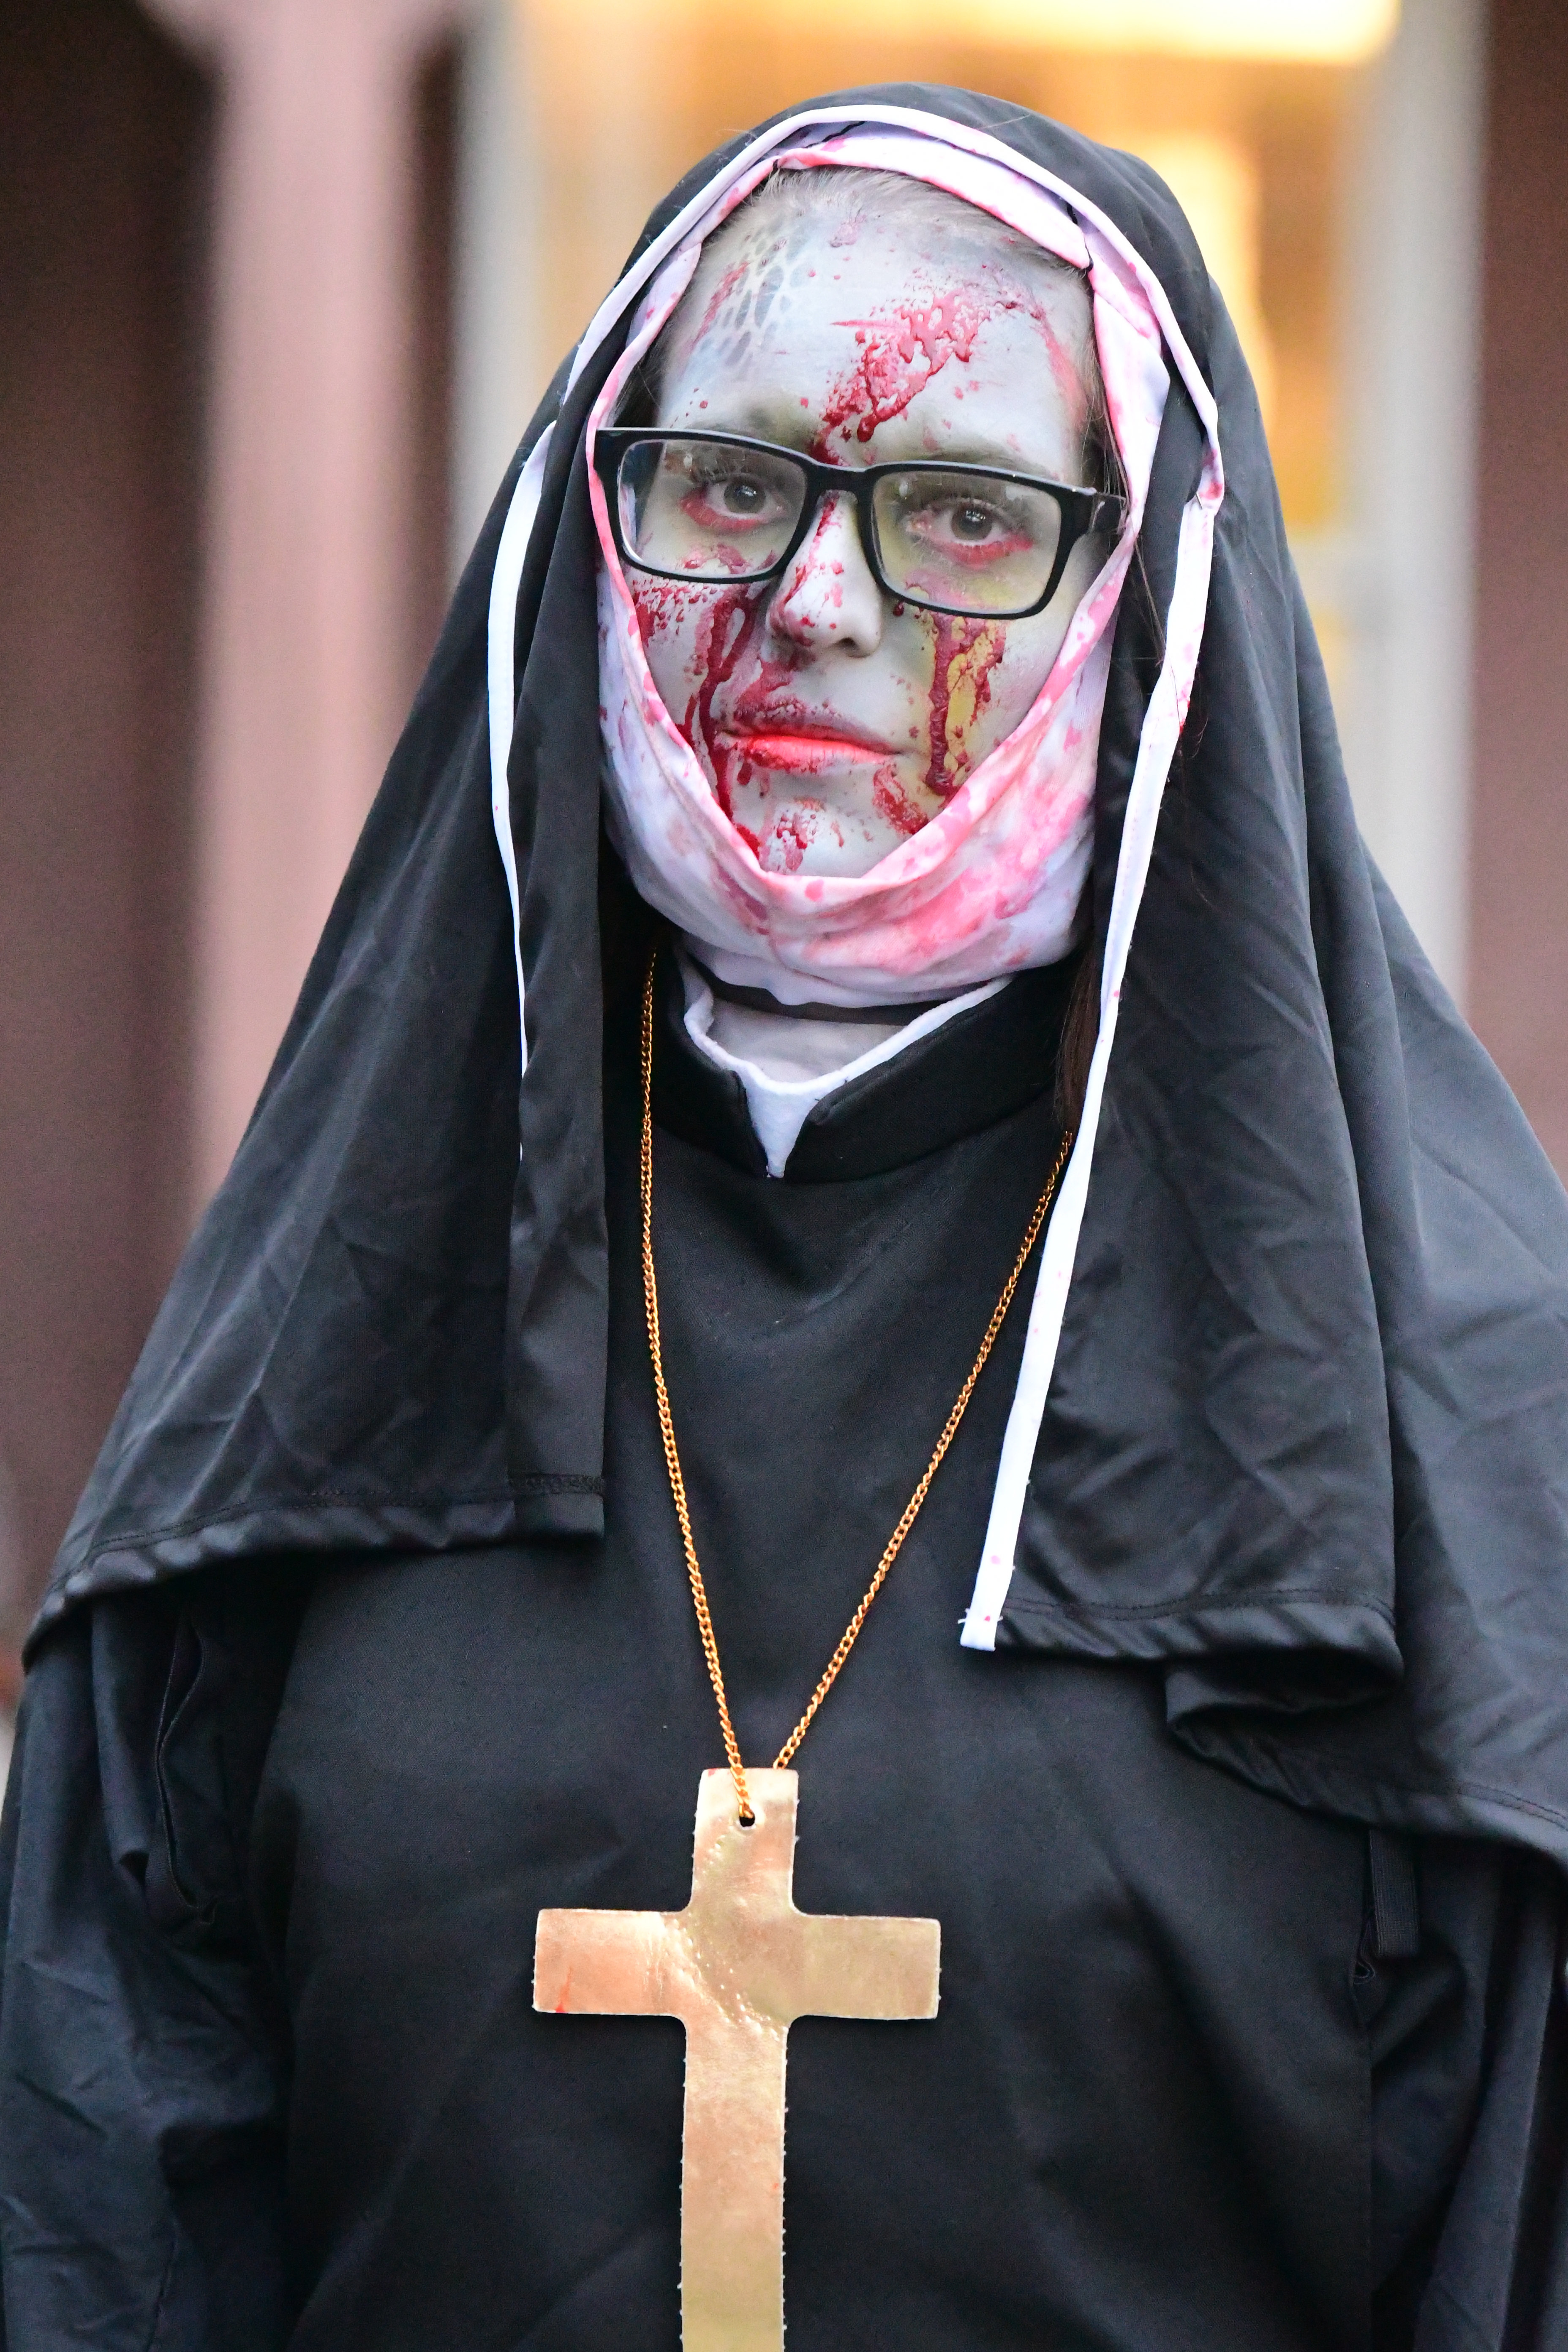 My night as a dead nun at the historic haunted Red Mill